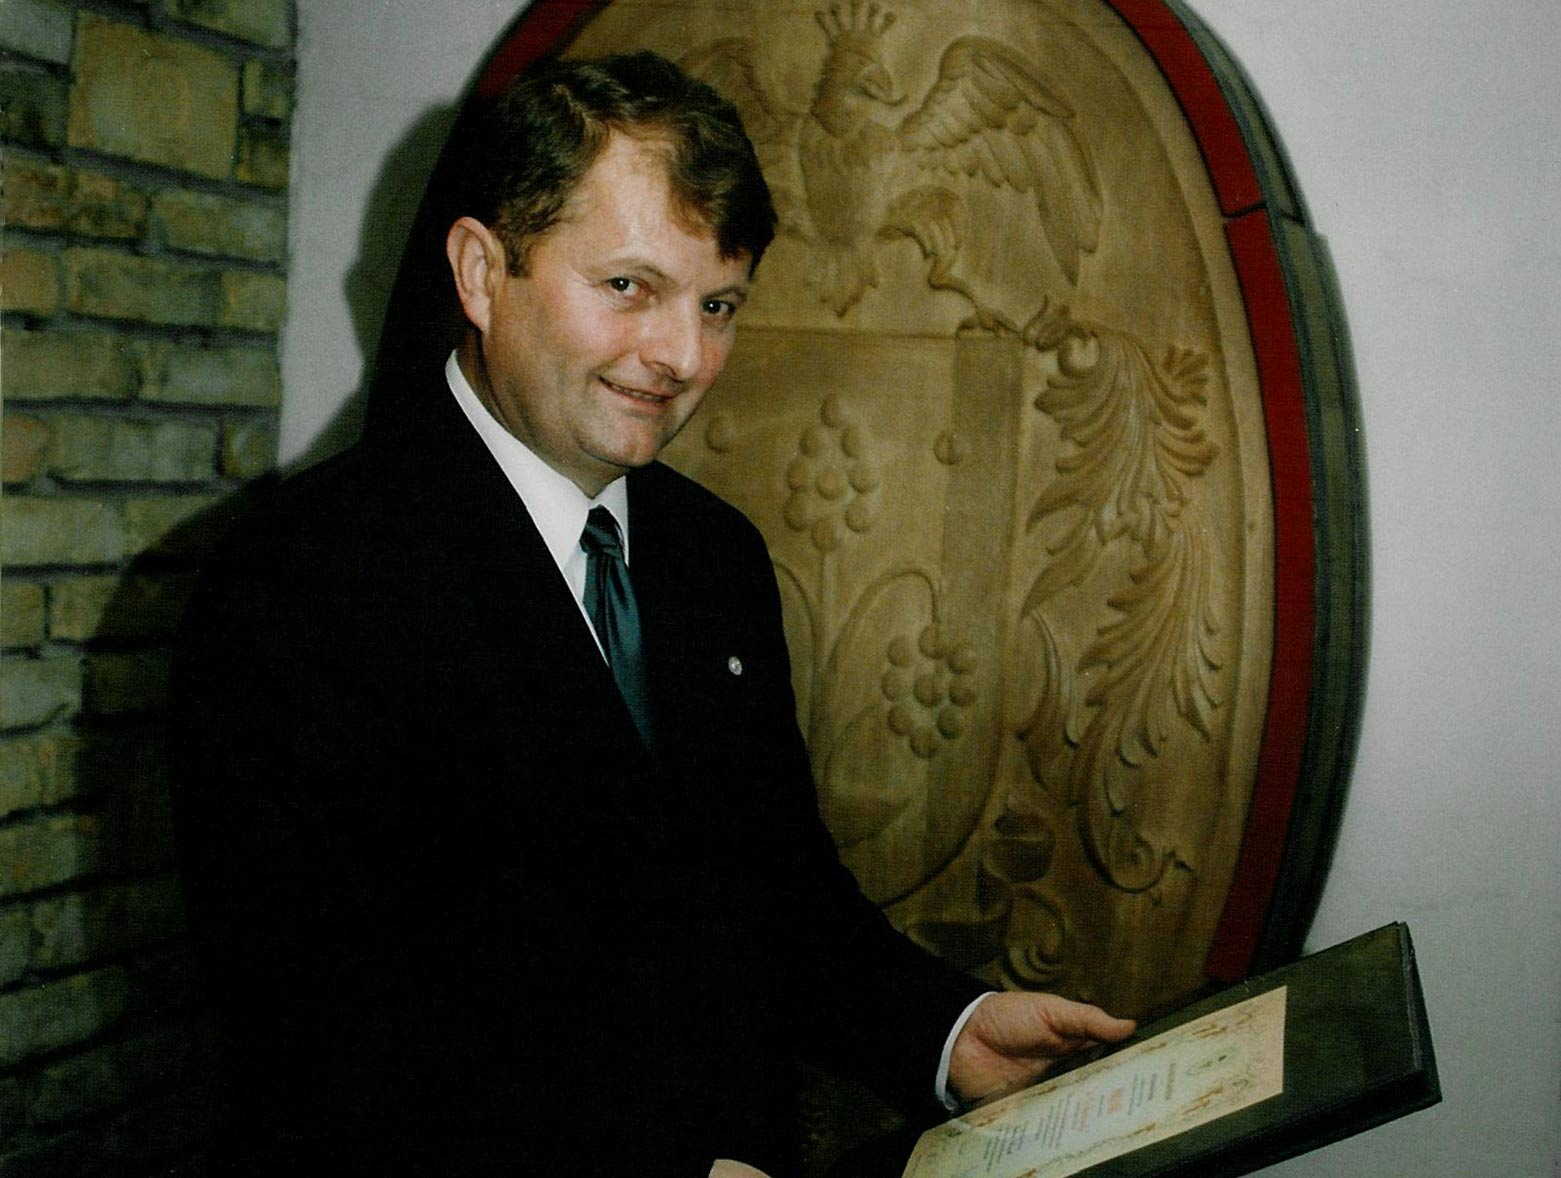 The Wine Producer of the Year in 1995 with award